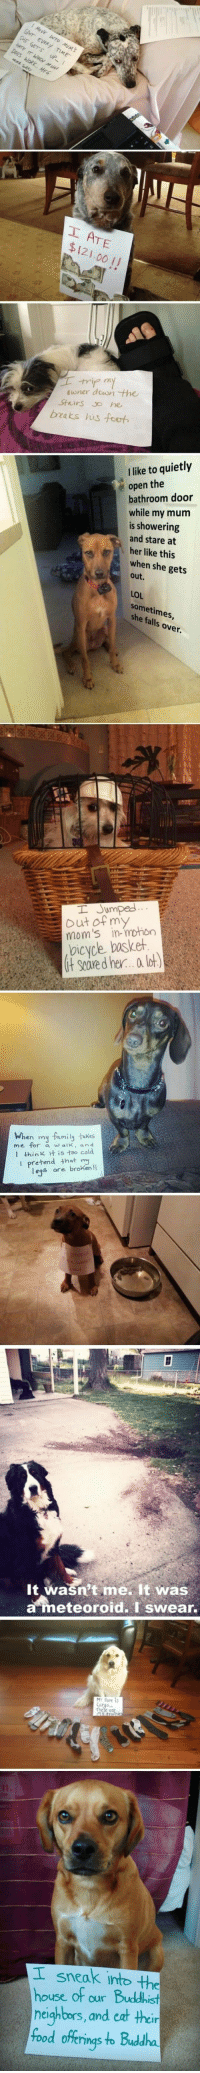 Funny Dog Shaming - notice how you never see any cat shaming... This is clearly because they have no shame.: AT  00 1I  ooser de the  bzats us -foot  llike to quietly  e open the  bathroom door  while my mum  is showering  and stare at  her like this  when she gets  out  over  but ofnm  mom's in-  oicyce boskeh  it Seare d her... lot  When my family tkes  It wasn't me. It was  eteoroid. I swear.  sneak into the  house of our  heighbors, and cat thei  food offerings to Buddha Funny Dog Shaming - notice how you never see any cat shaming... This is clearly because they have no shame.